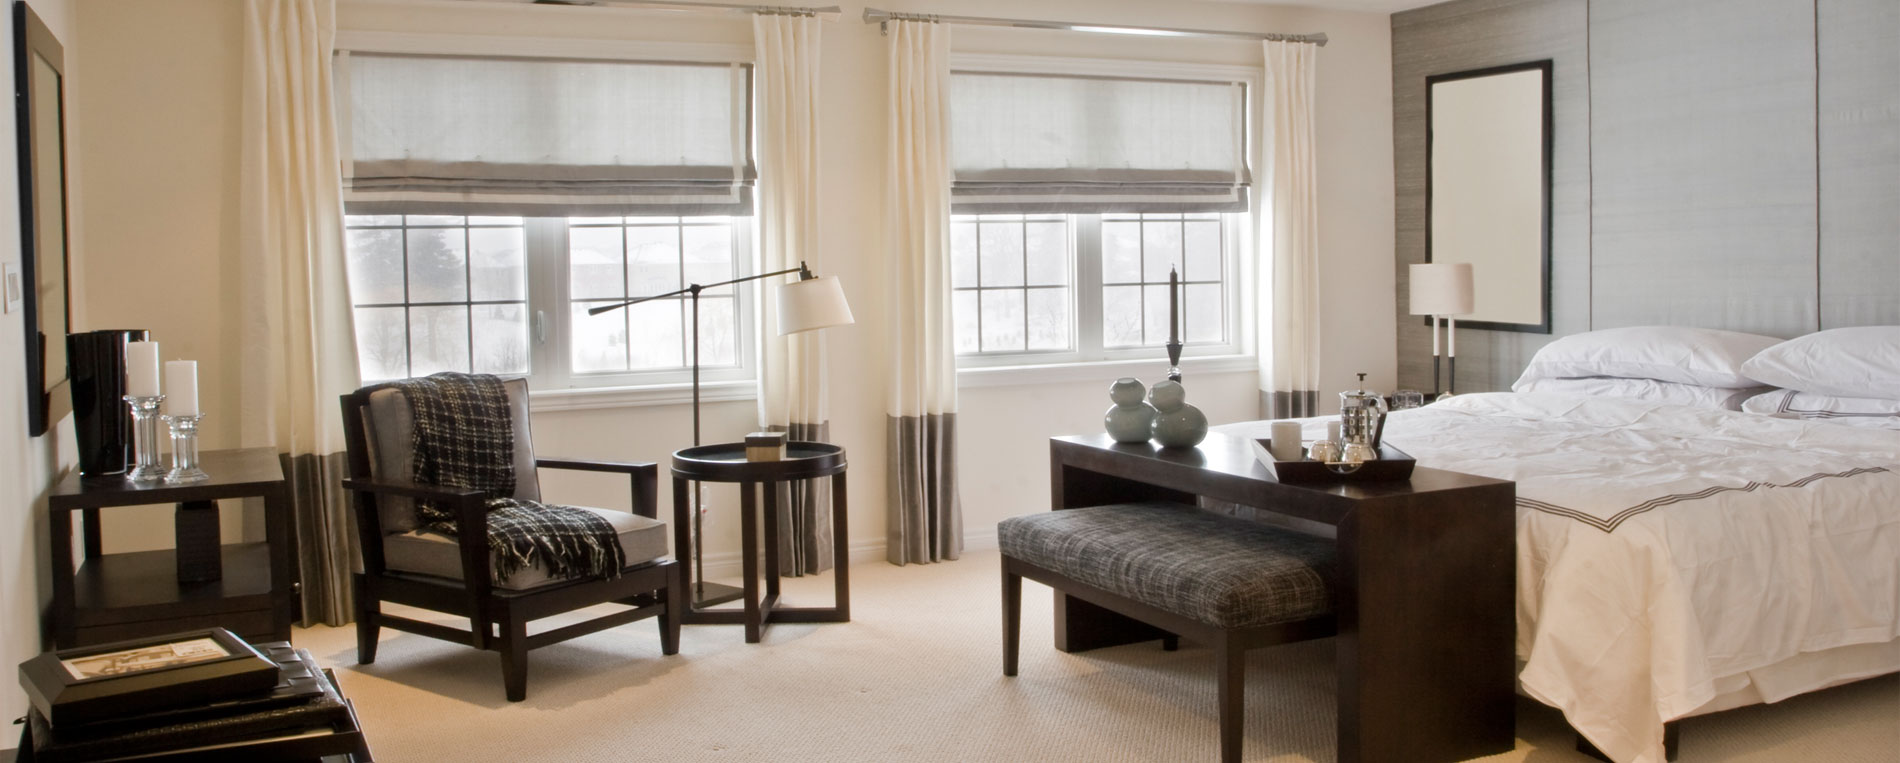 Woven Shades | Motorized Roman Blinds